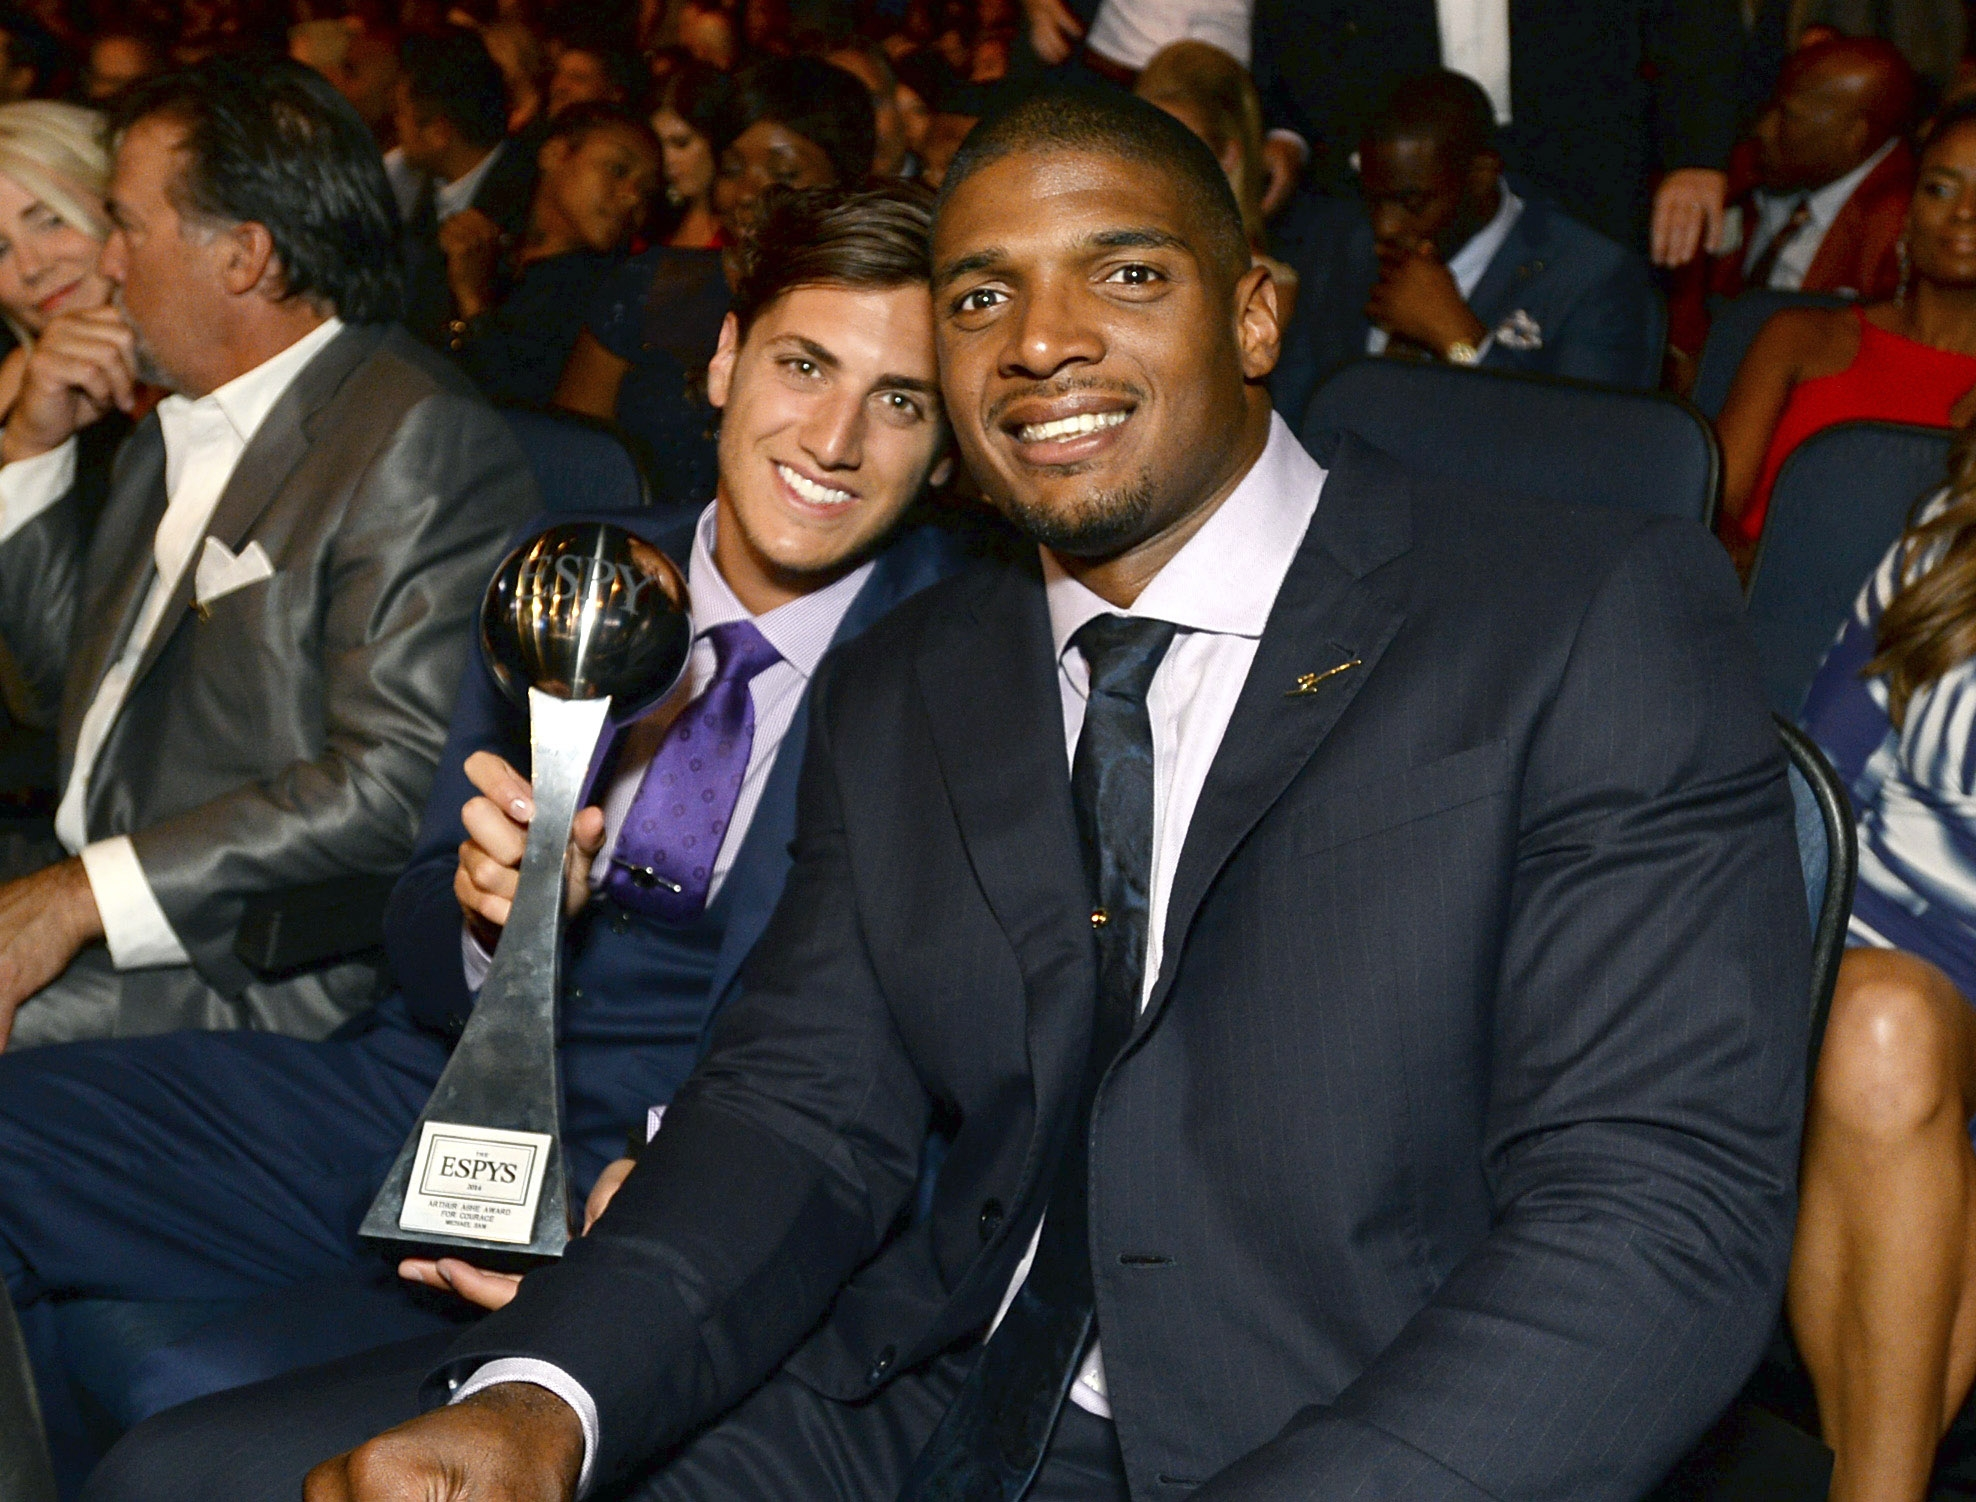 Vito Cammisano, left, and Michael Sam pose in the audience at the ESPY Awards at the Nokia Theatre on Wednesday in Los Angeles.